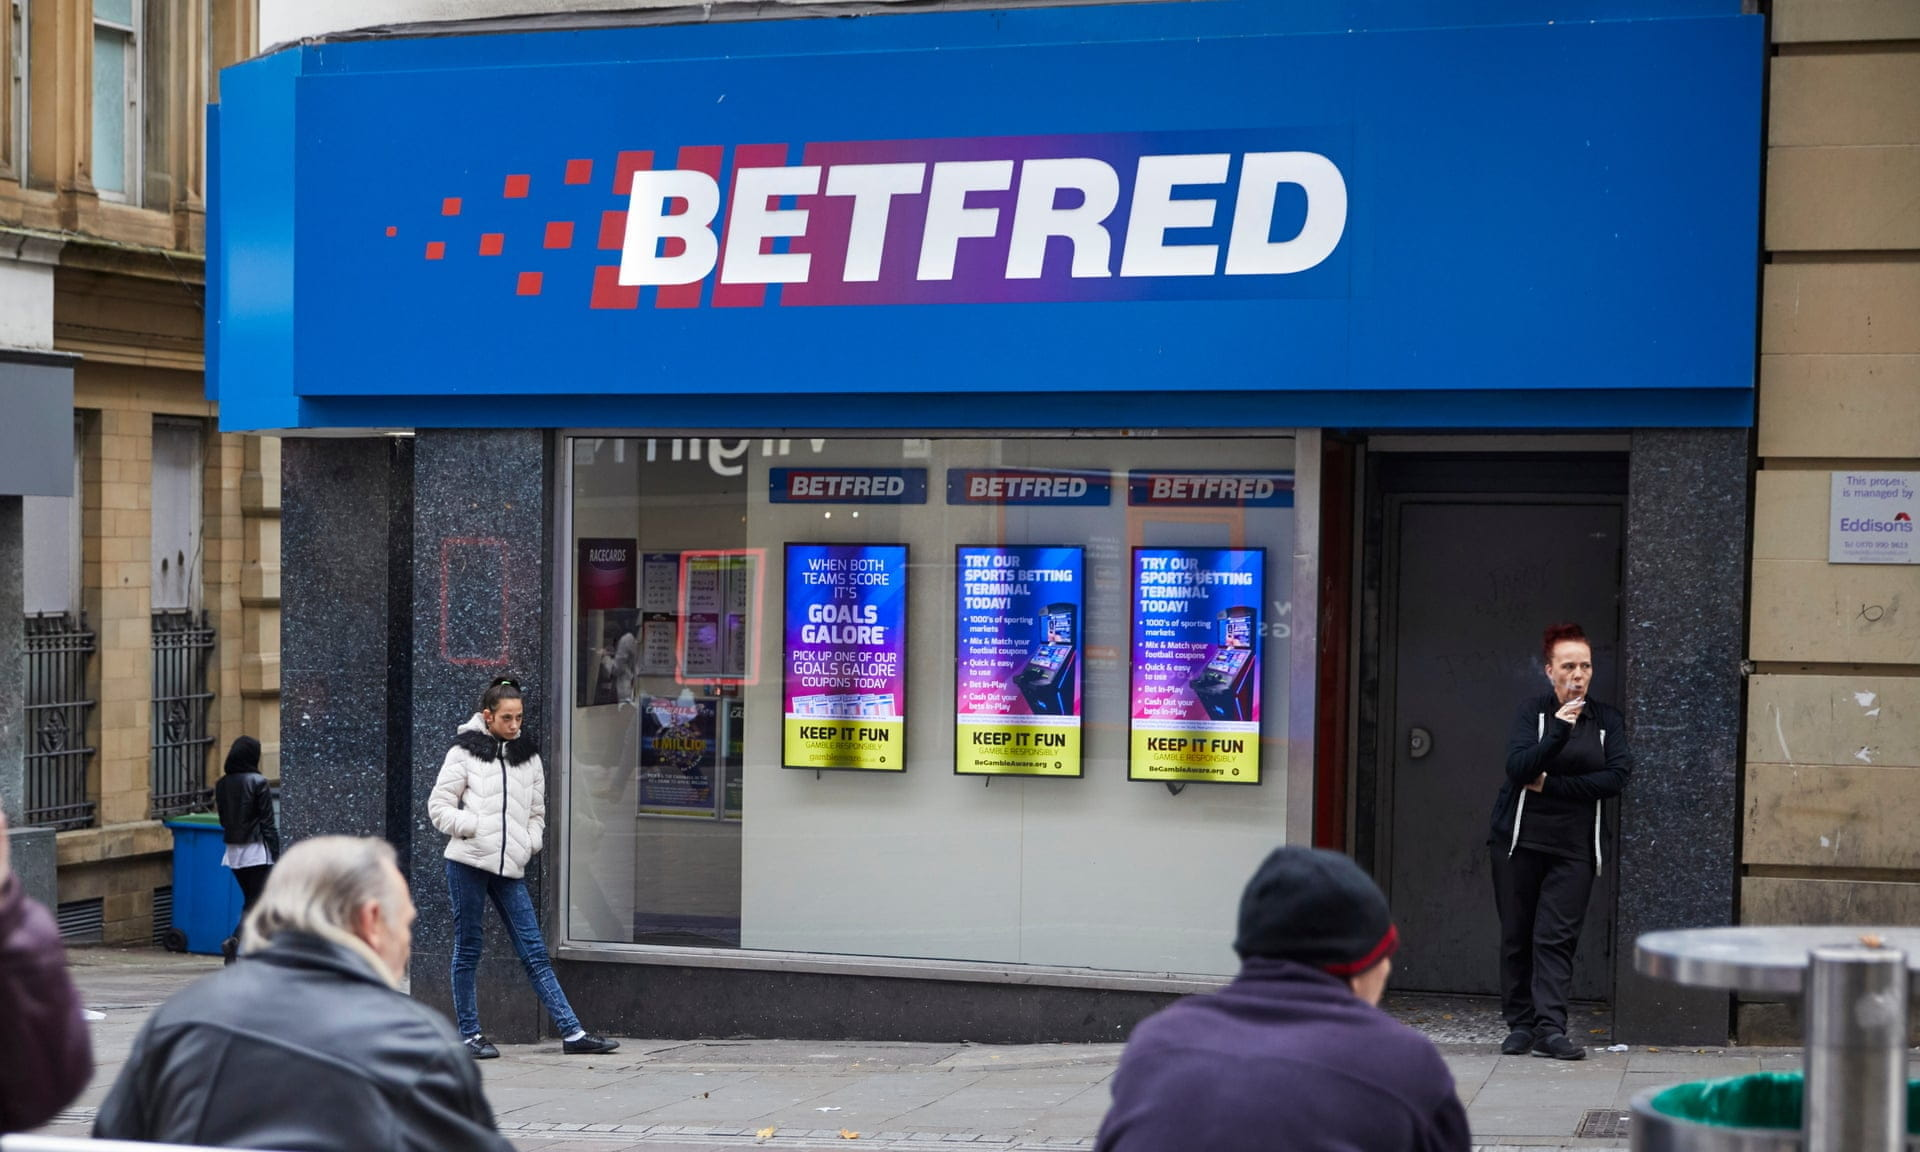 A Betfred shop on the highstreet, with members of the public walking about.